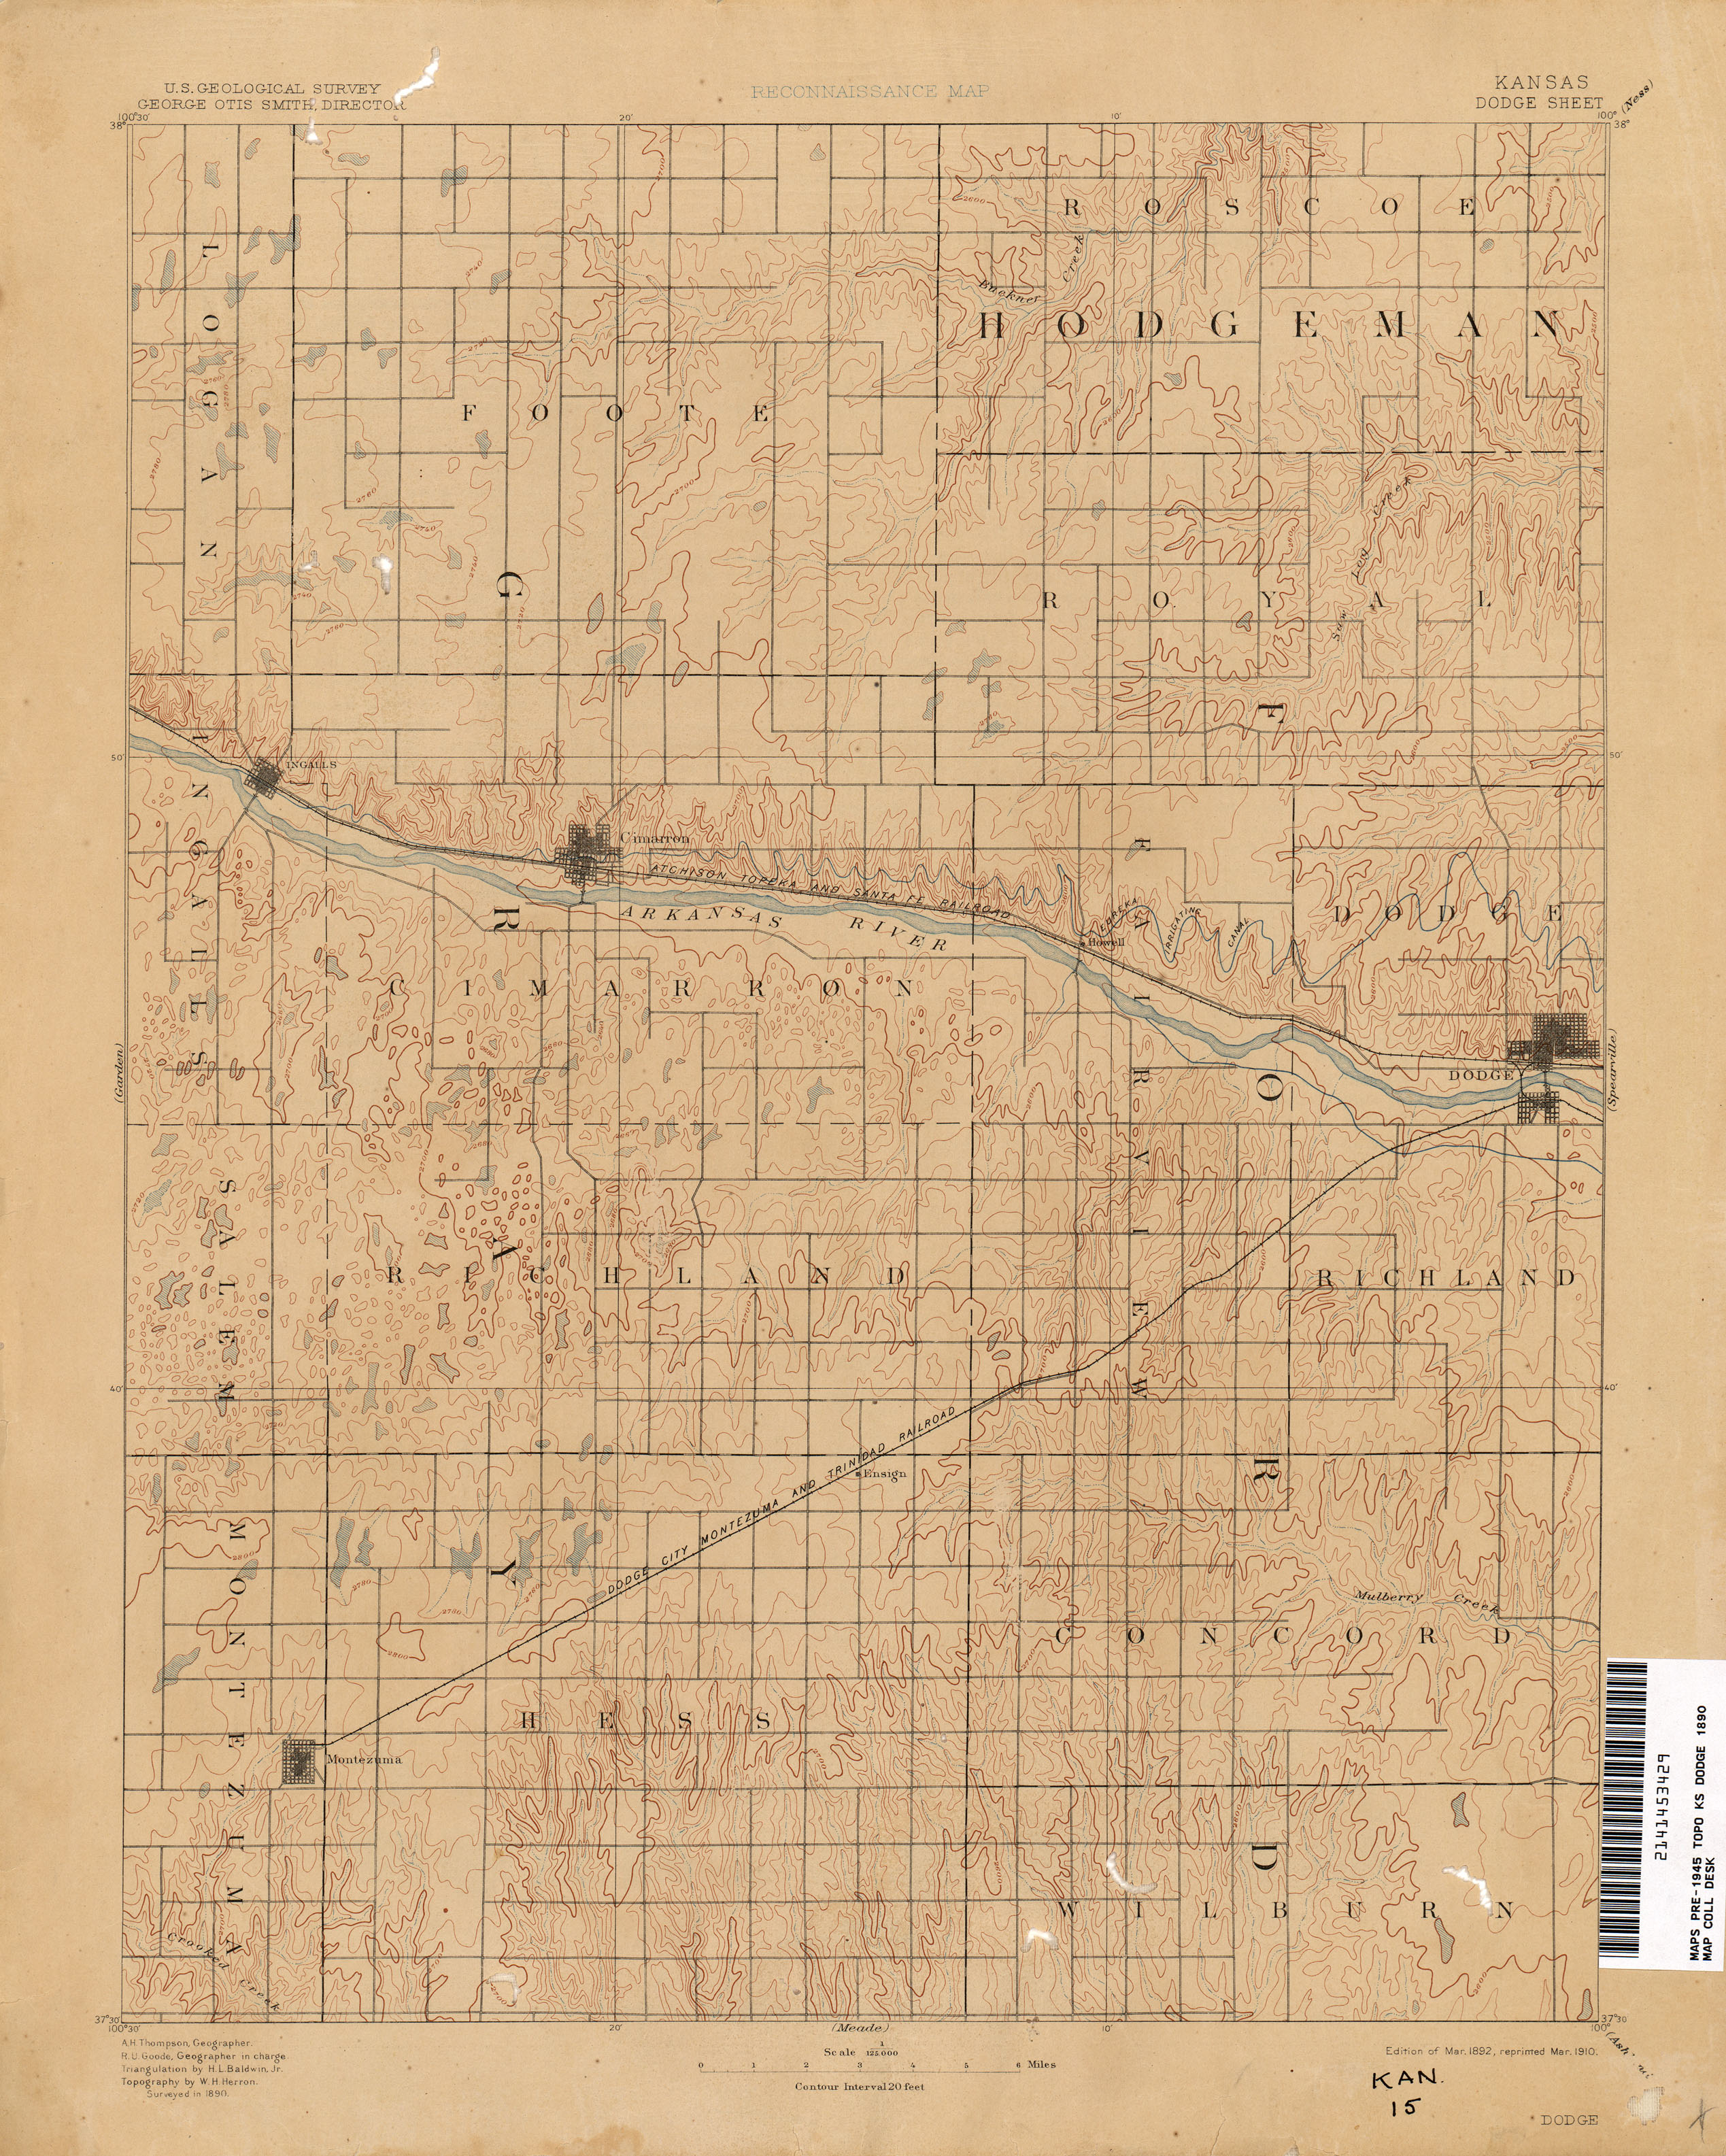 Kansas historical topographic maps perry castaeda map collection kansas historical topographic maps gumiabroncs Gallery